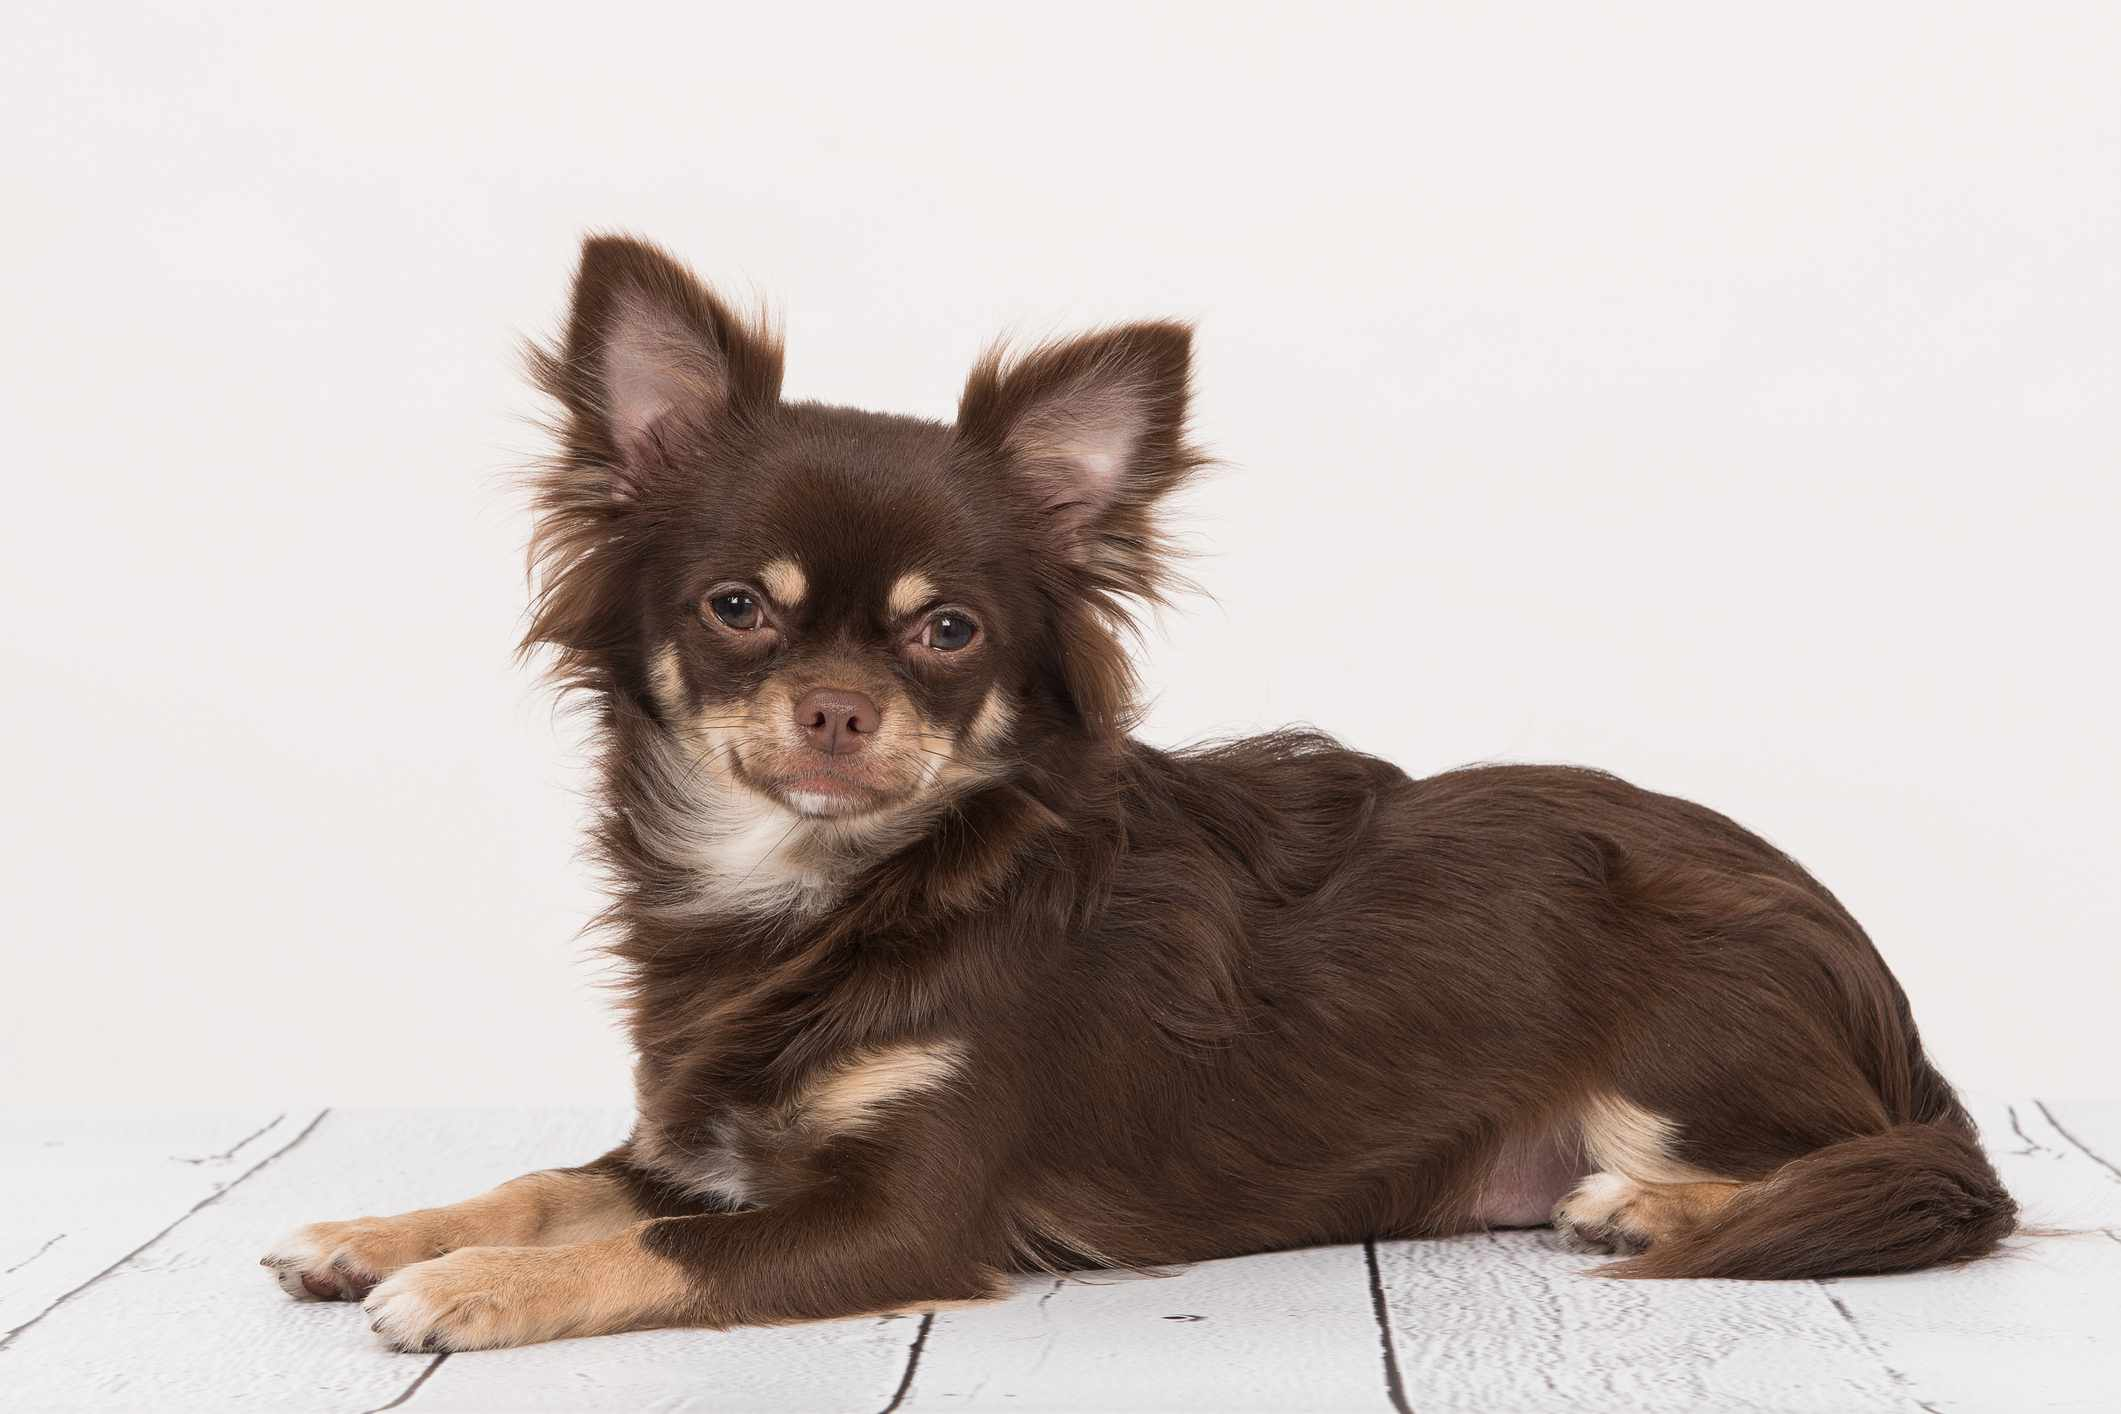 Brown long-haired Chihuahua sitting on floor